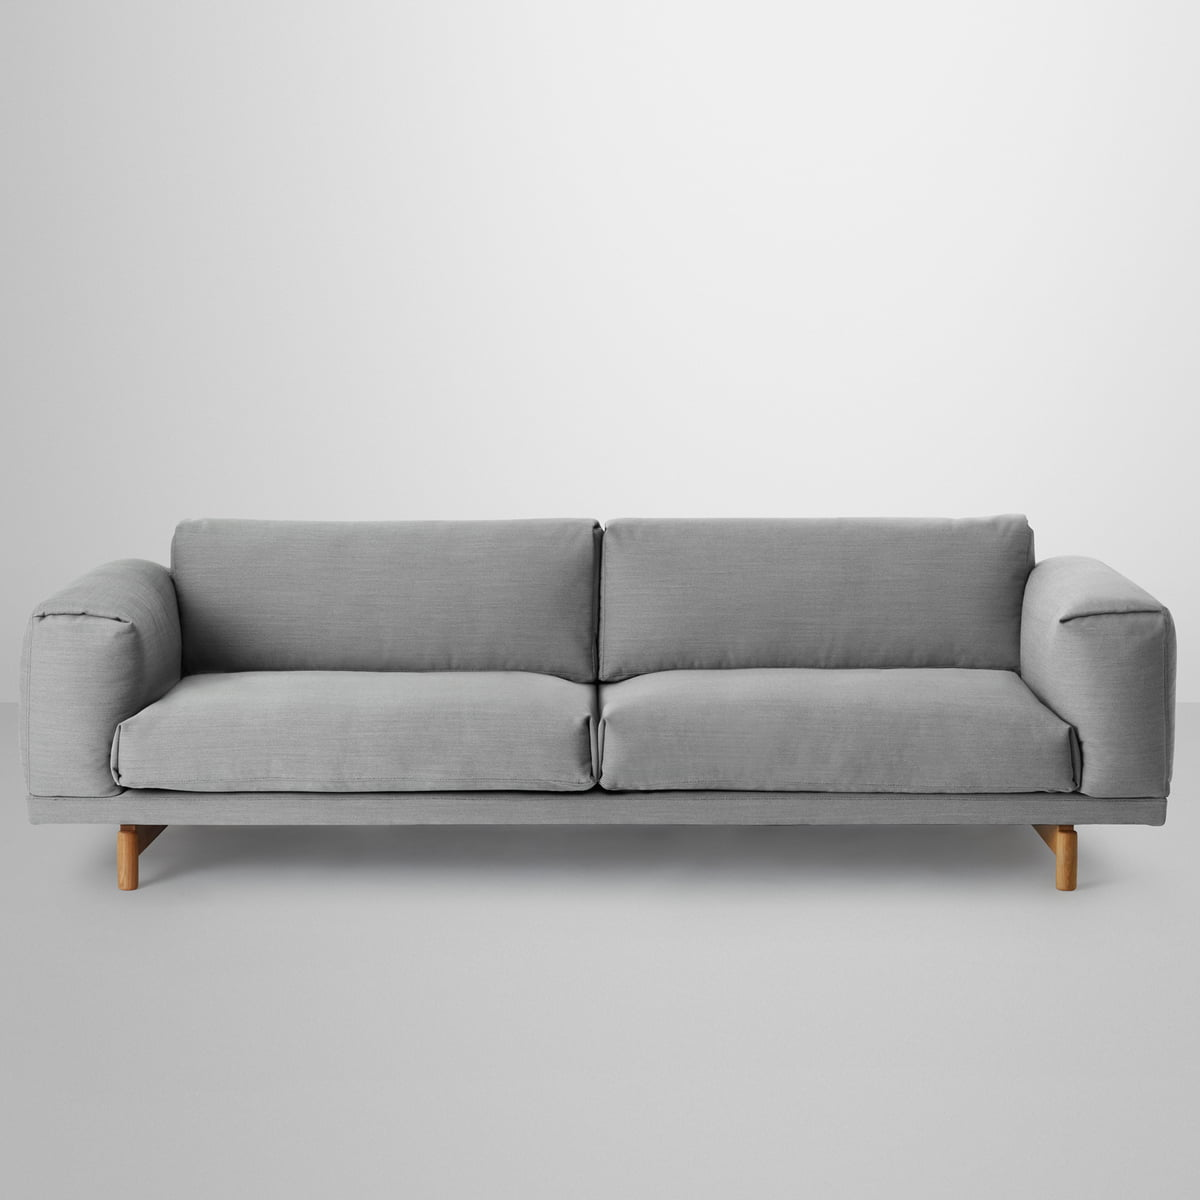 Beautiful Rest Sofa Sitzer Von Muuto With Sofa 3er